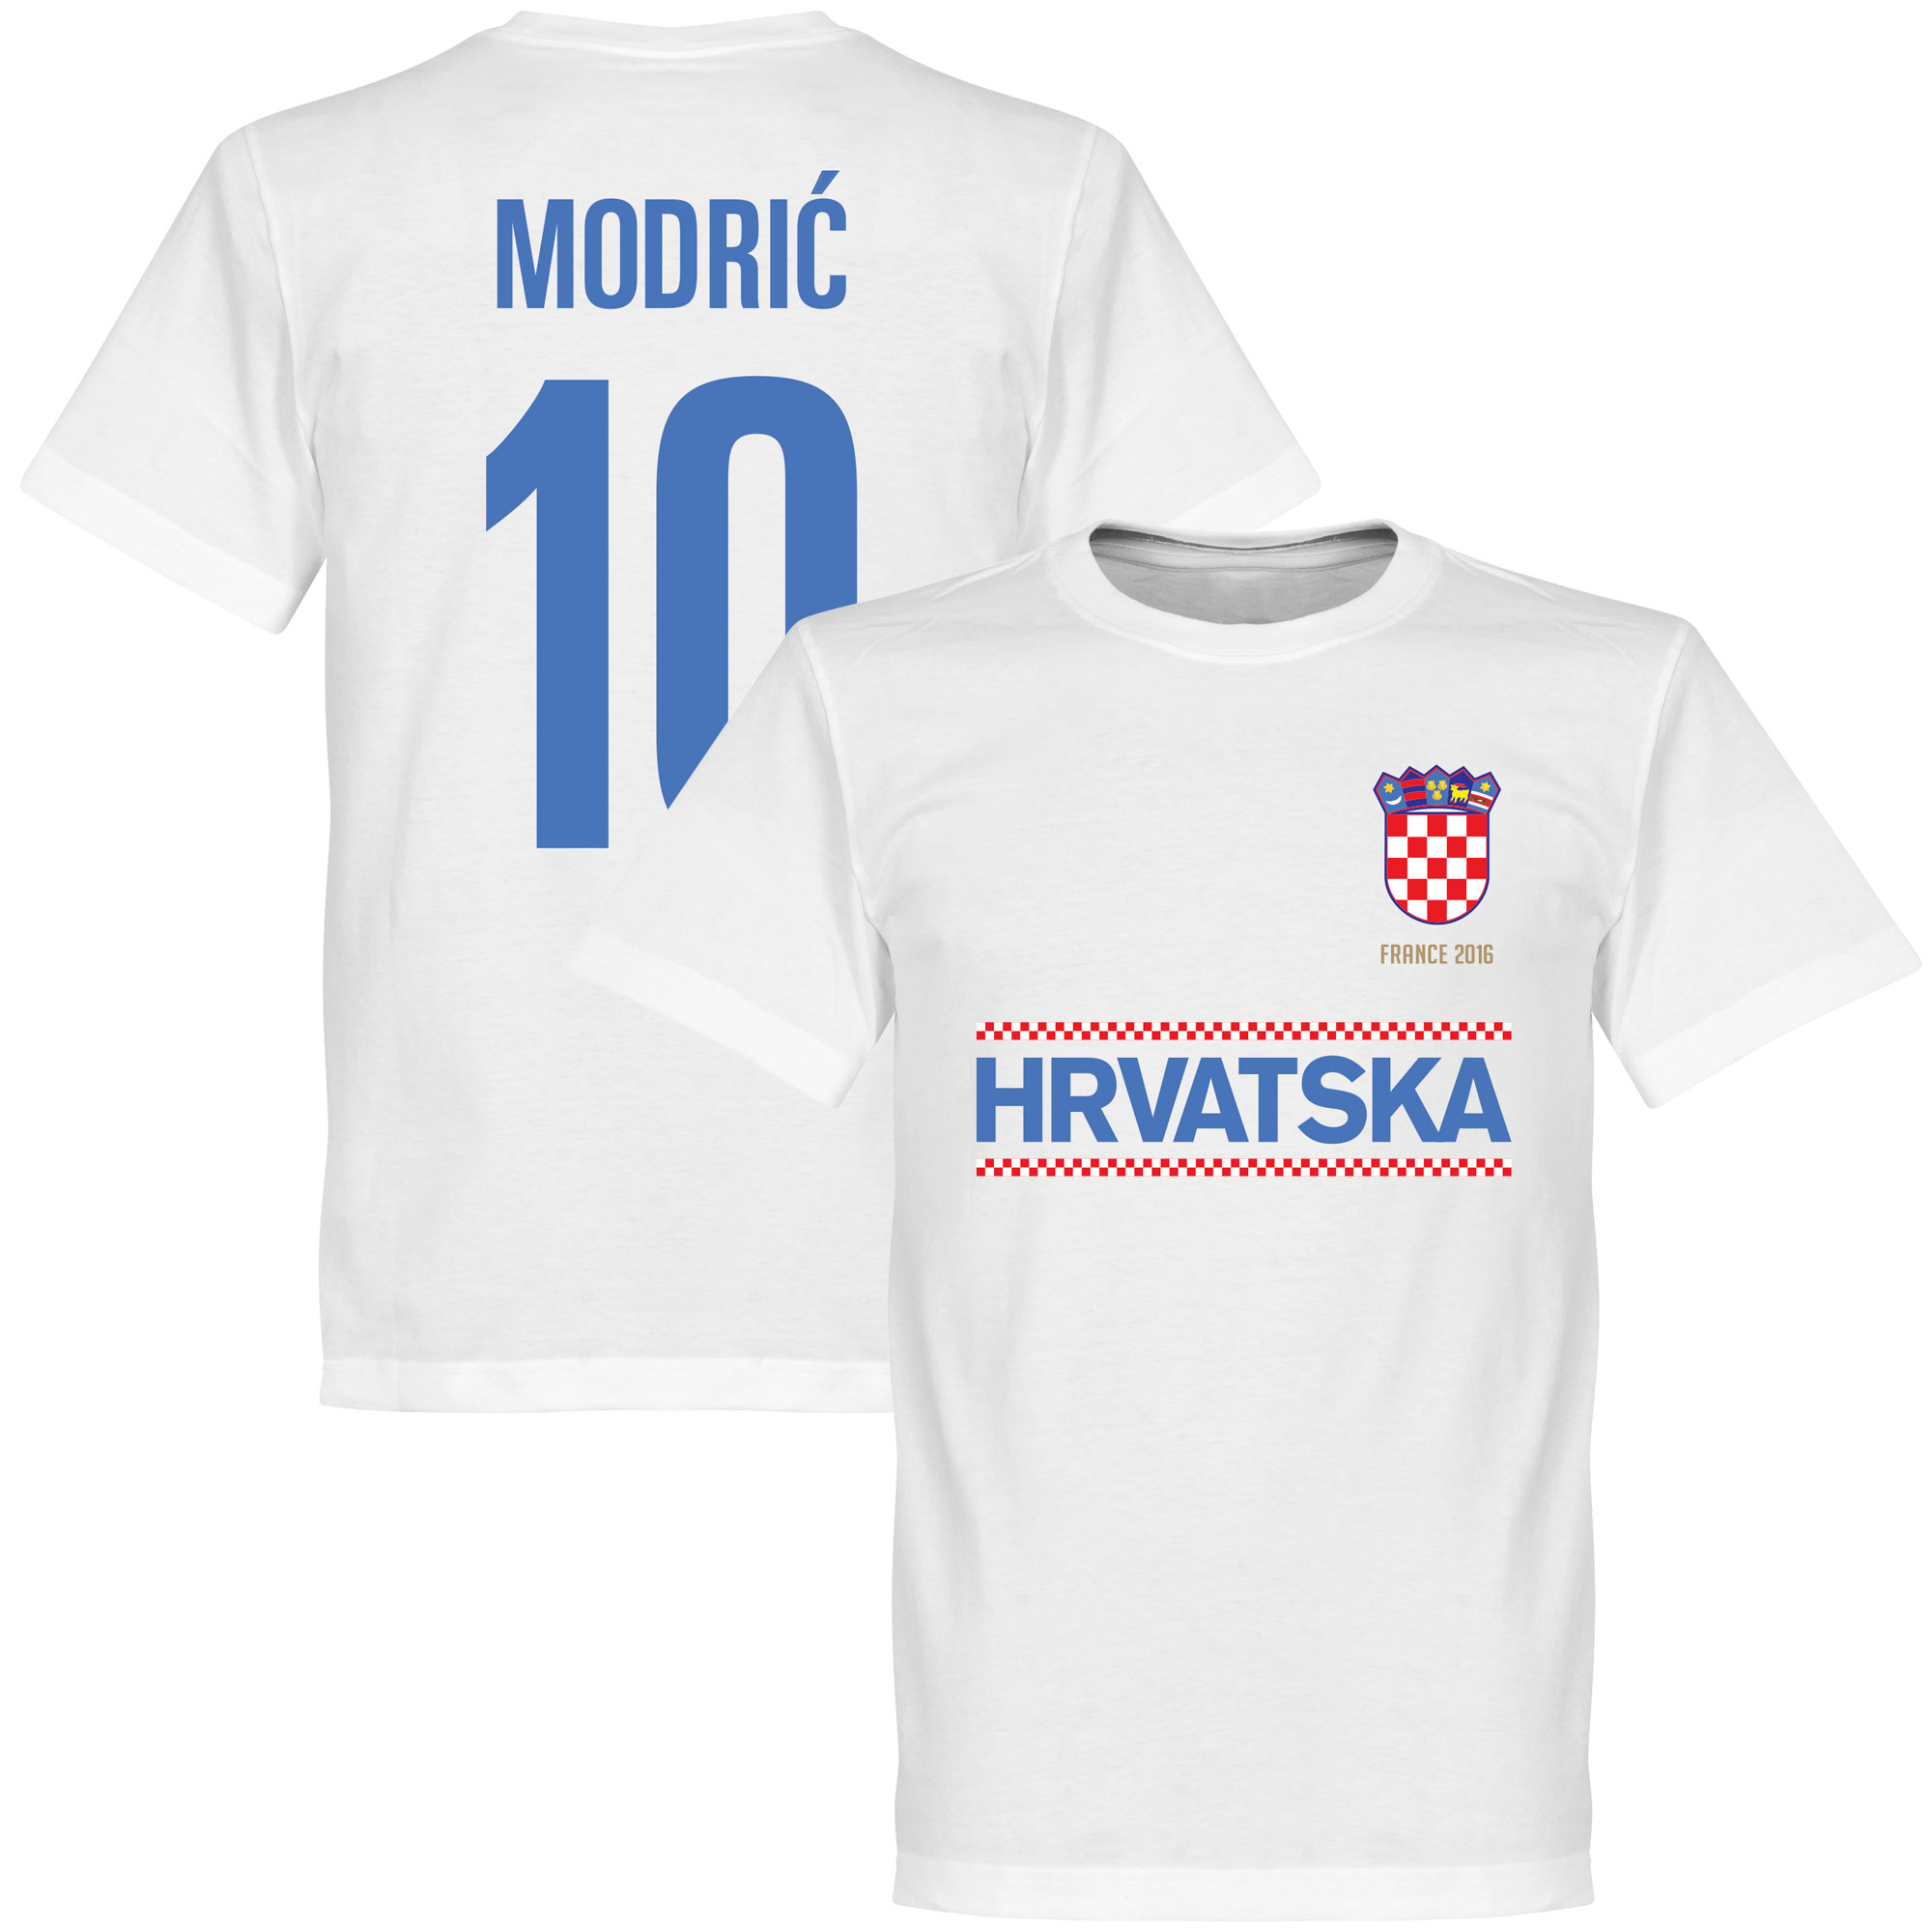 Croatia Modric Team Tee - White - XL